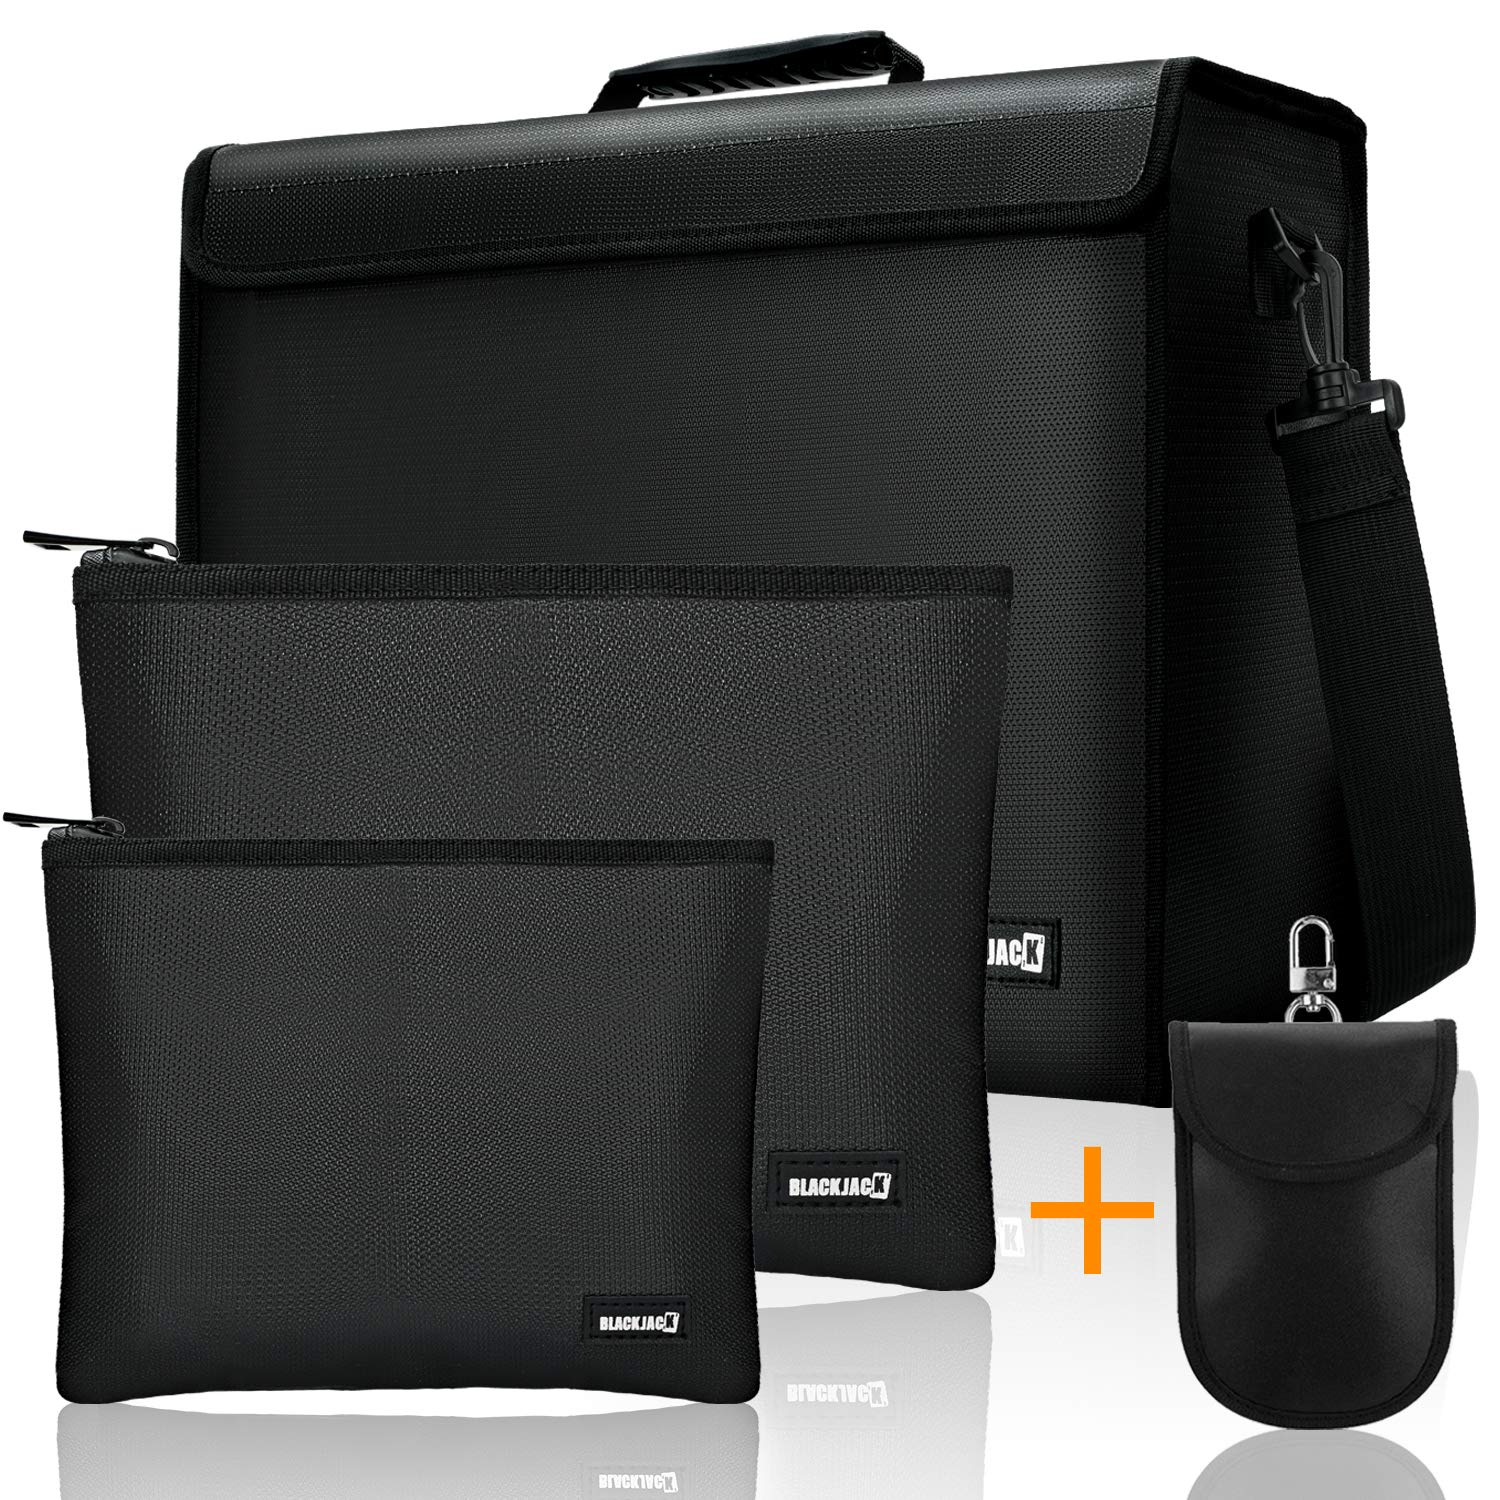 """Fireproof Document Bags Safe Bags Water Resistant, Extra Large 17"""" x 12"""" x 5"""", with a Faraday Bag & 2 PCS Portable Fireproof Bags for Documents, Cash and Valuables"""